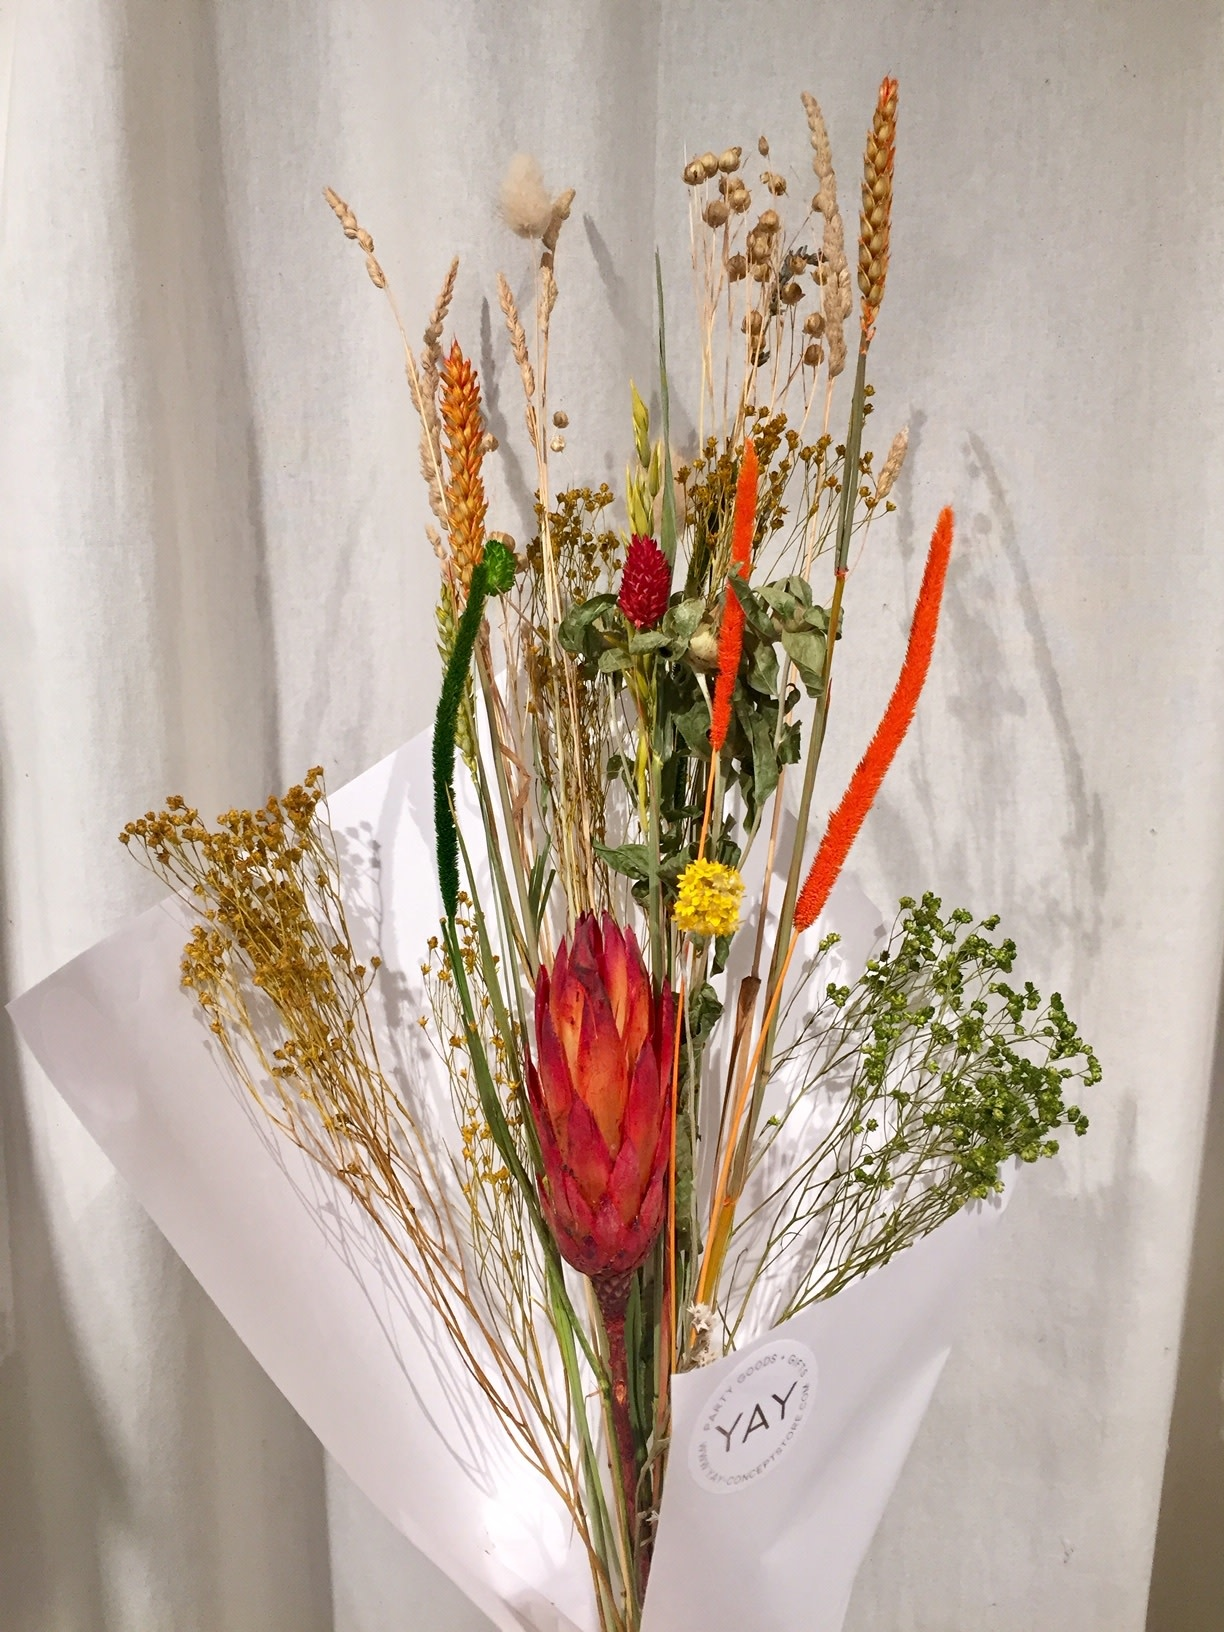 YAY Medium dried flowers bouquet carrot